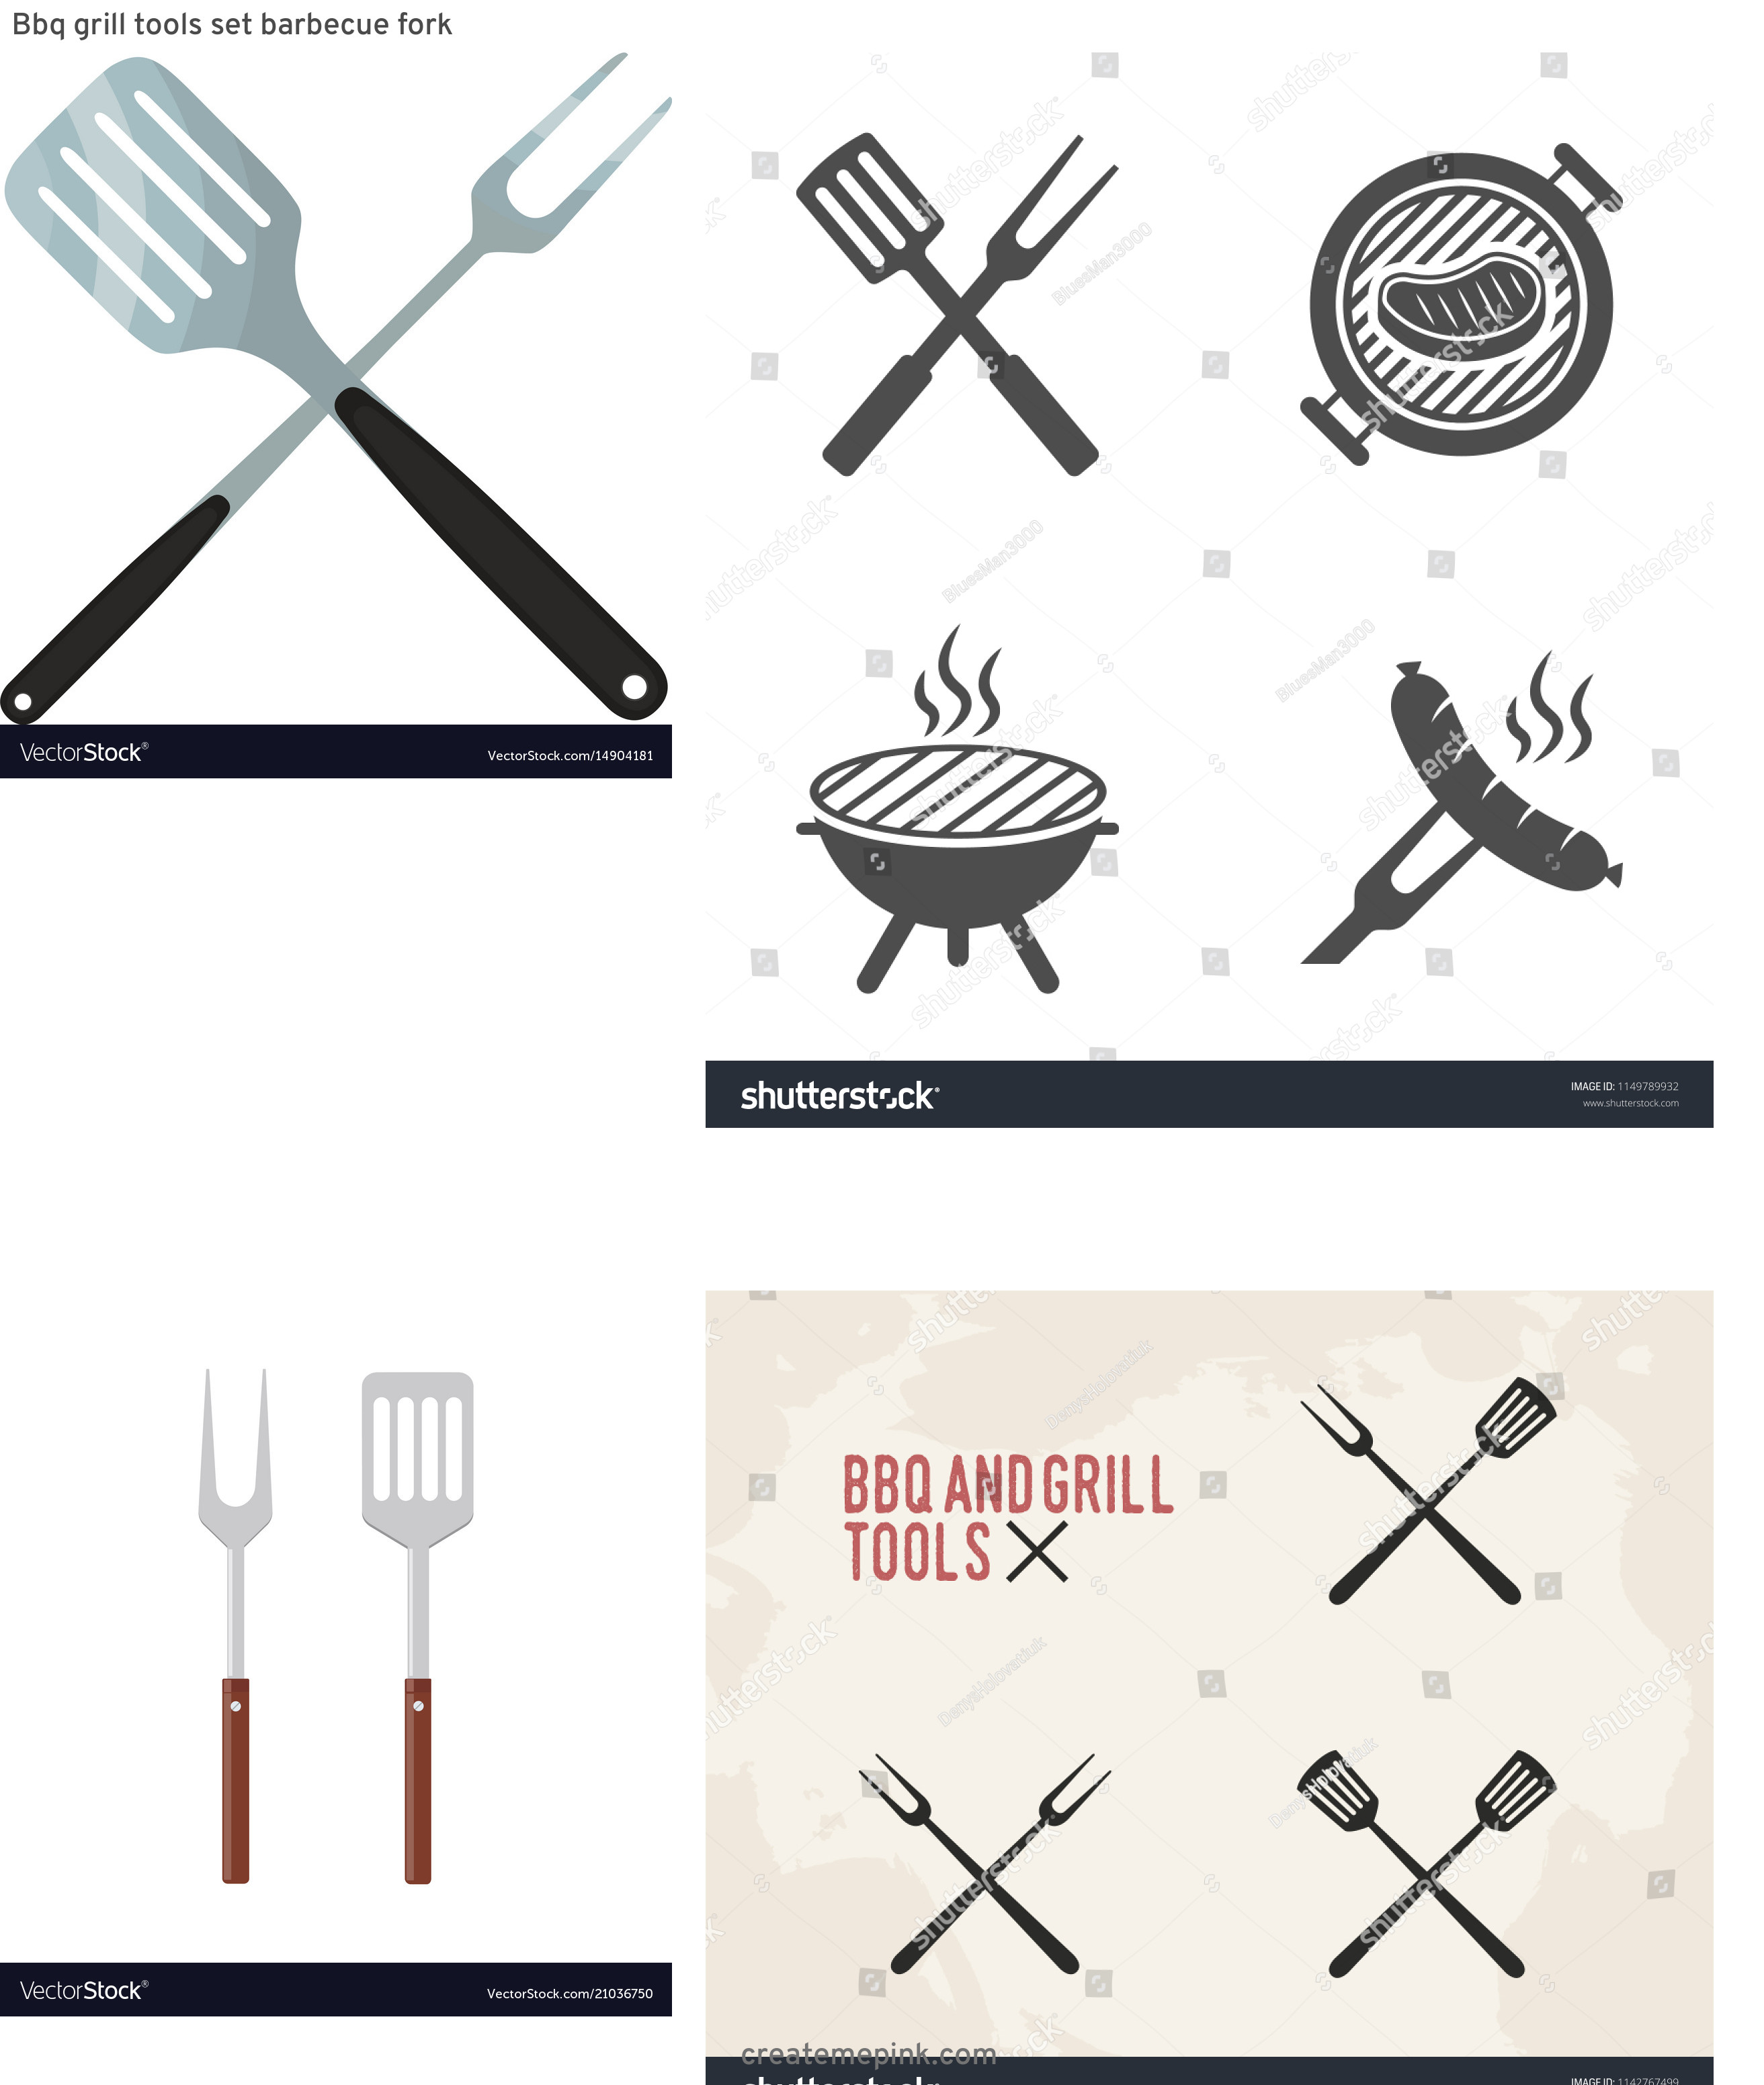 BBQ Fork Vector: Bbq Grill Tools Set Barbecue Fork